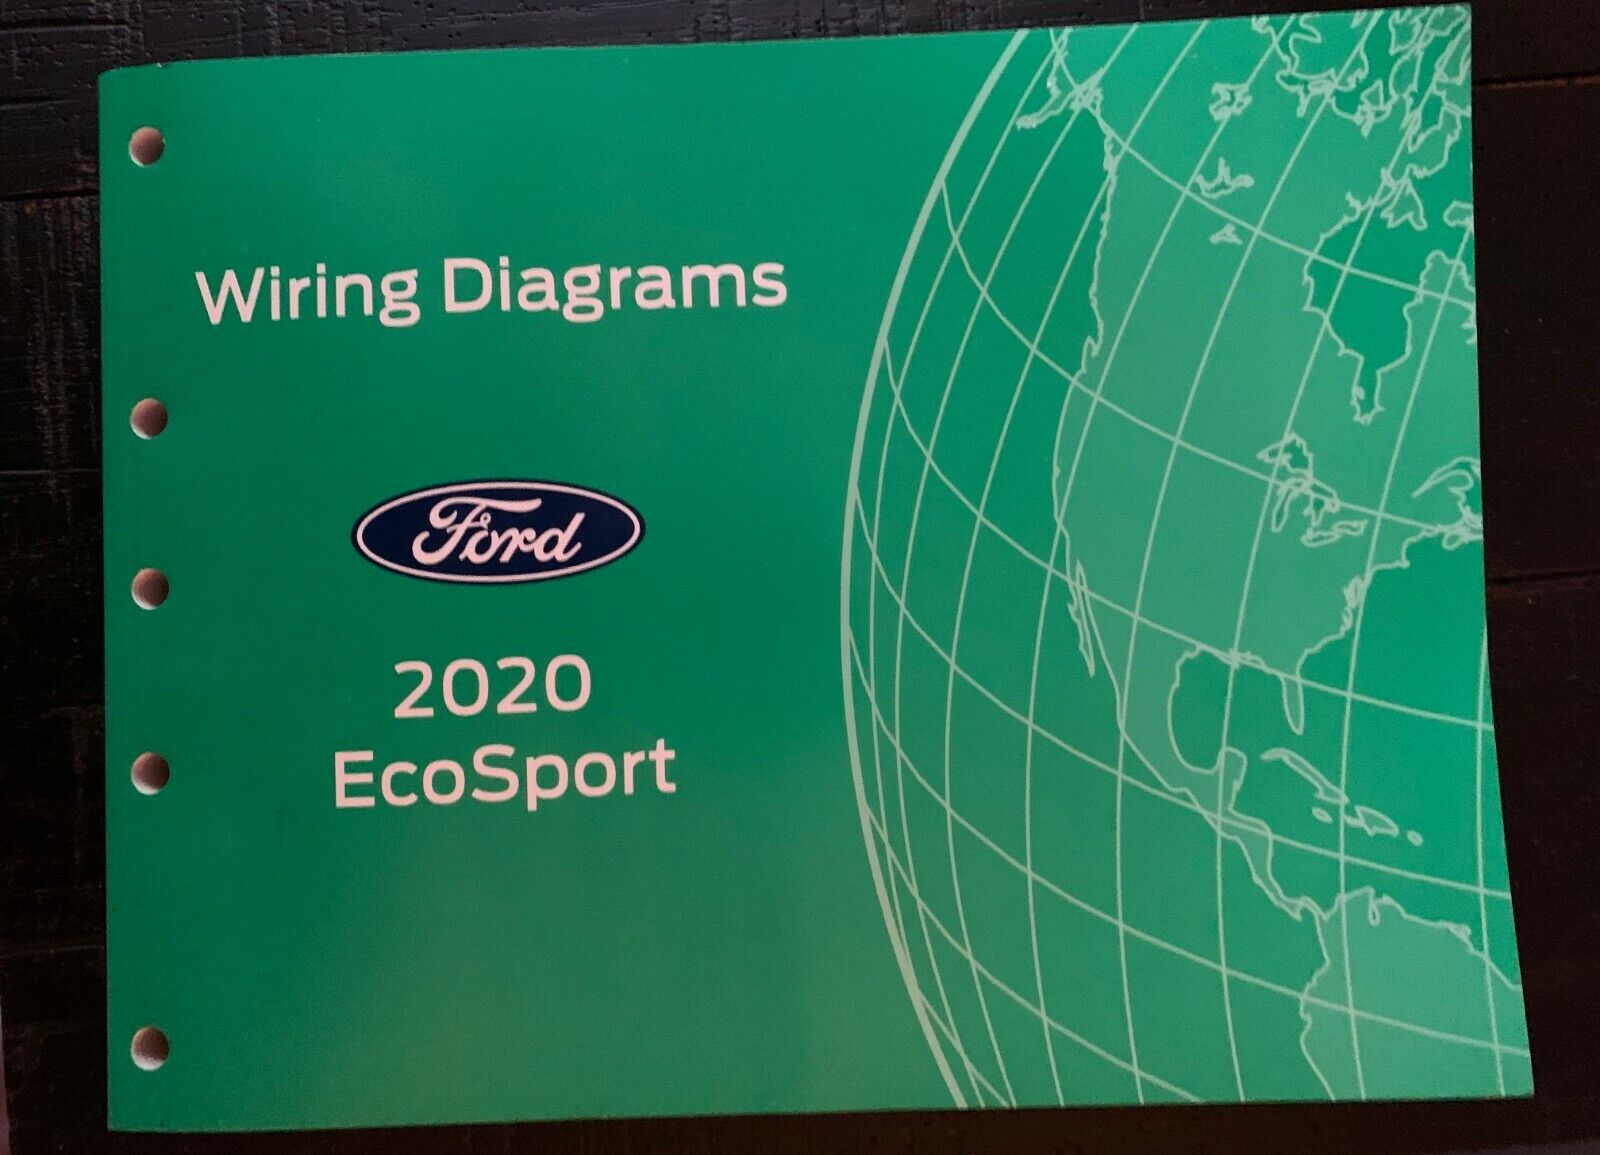 2020 Ford Ecosport Electrical Wiring Diagram Service Manual Fcs-21514-20